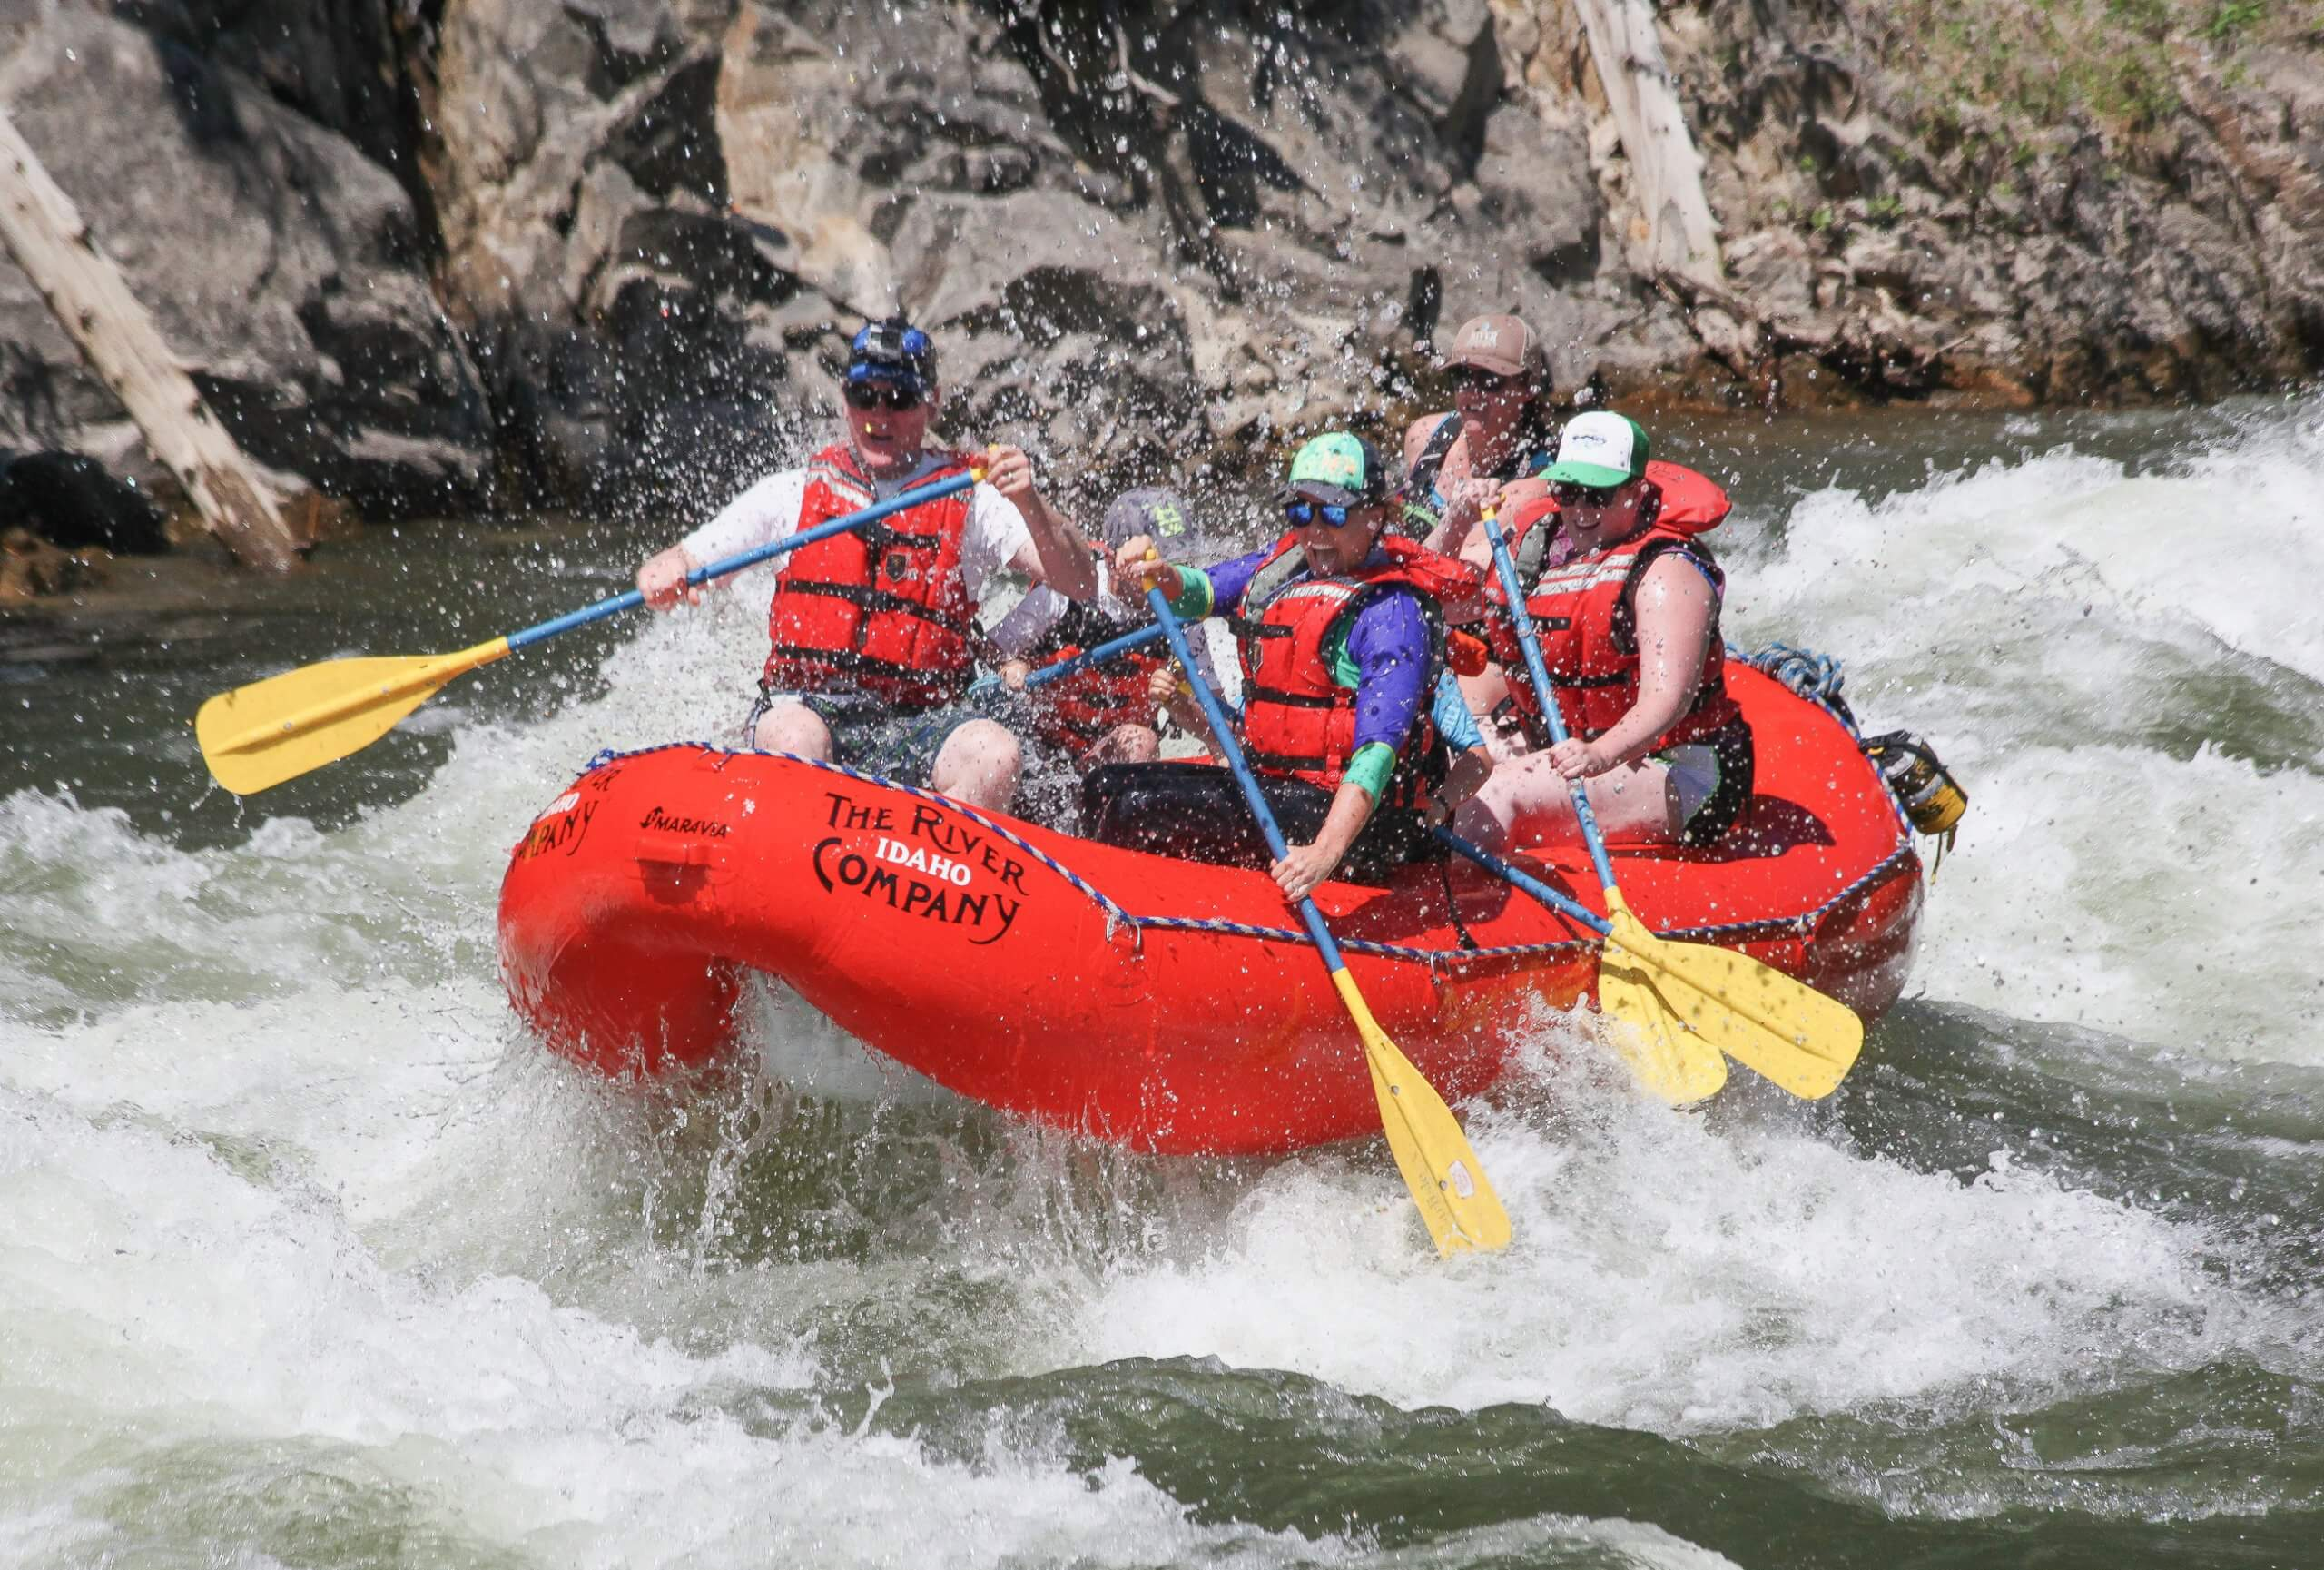 The best way to experience a hot summer day in Idaho, on the river!